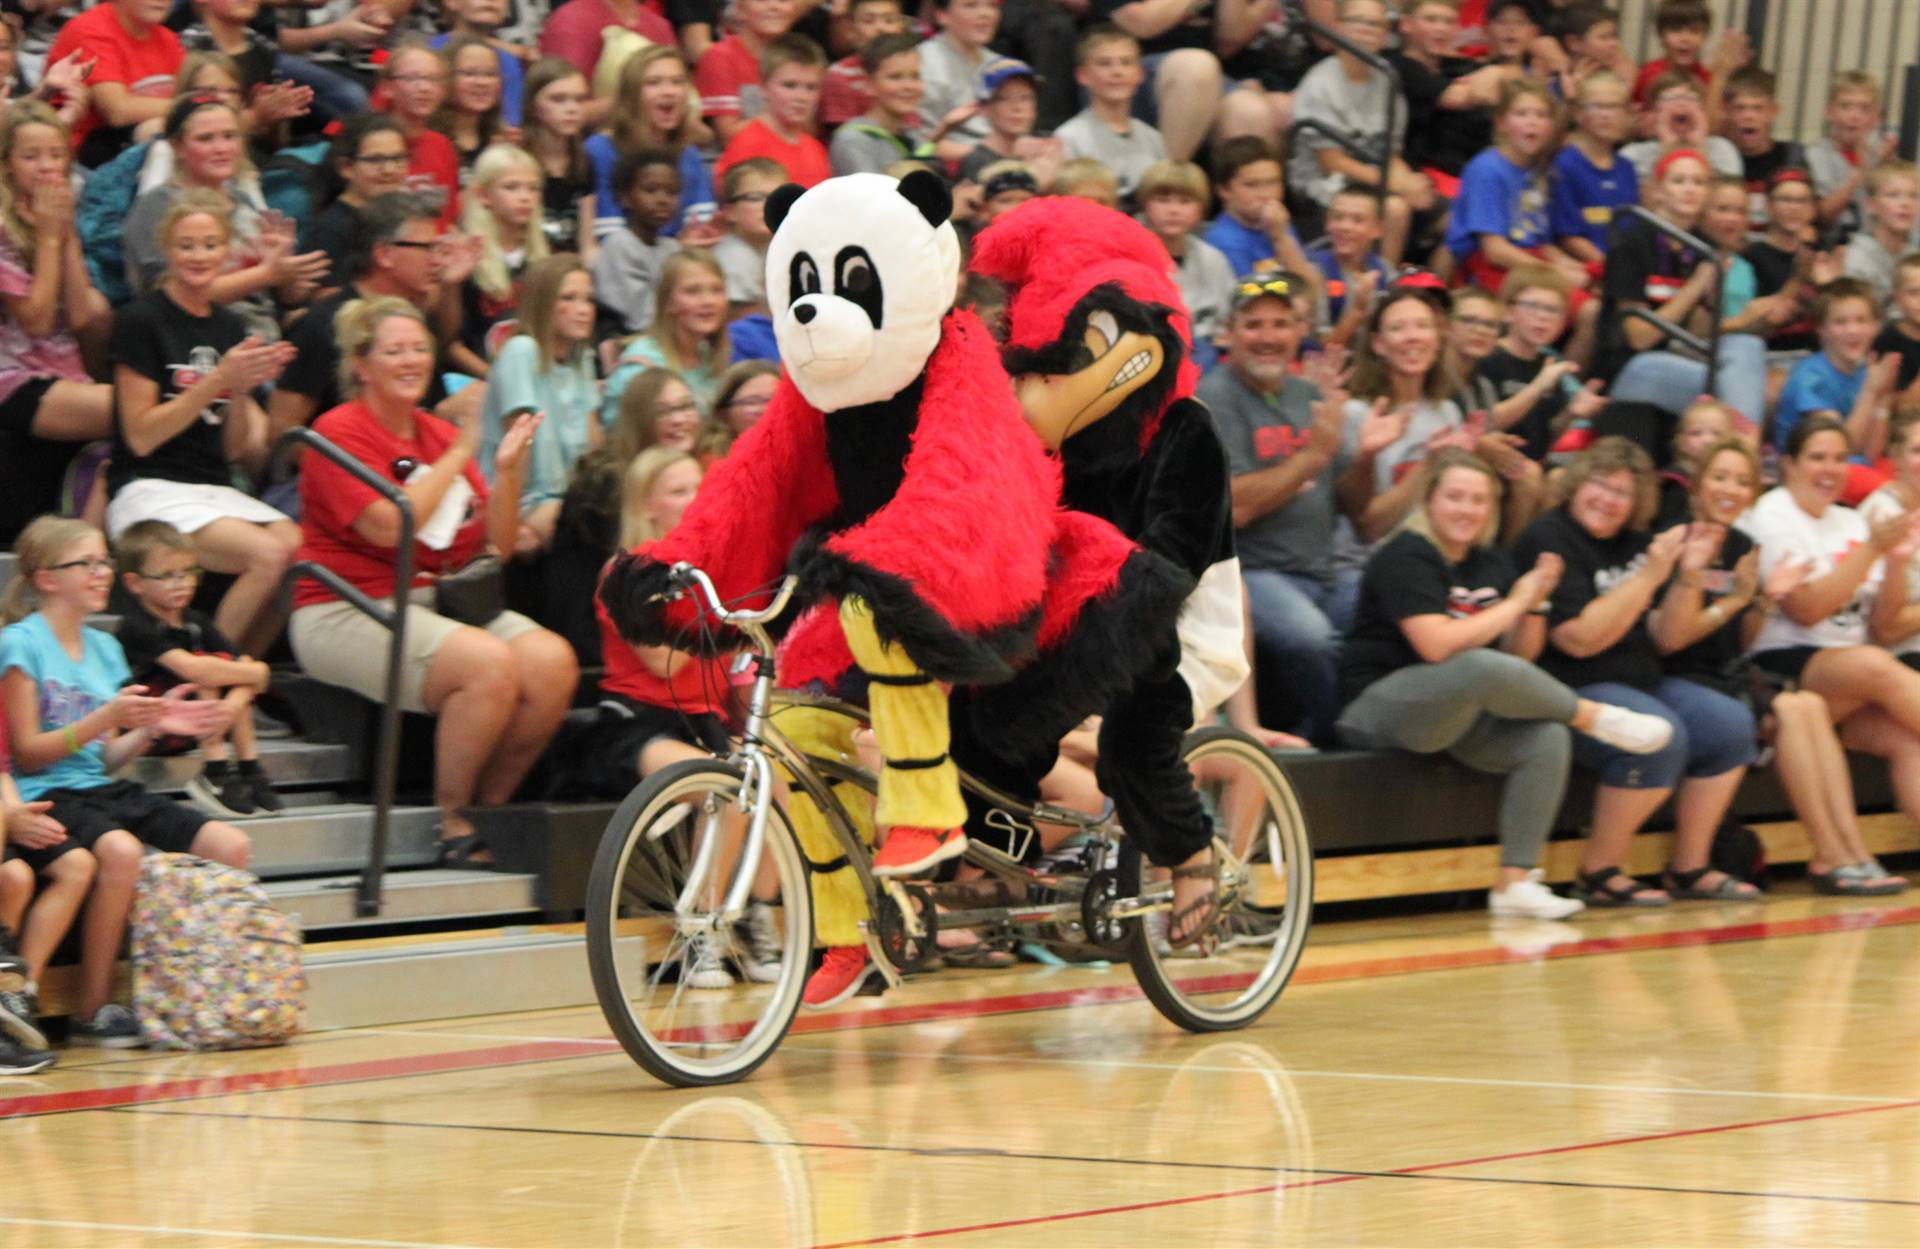 Homecoming pep rally photo of mascots